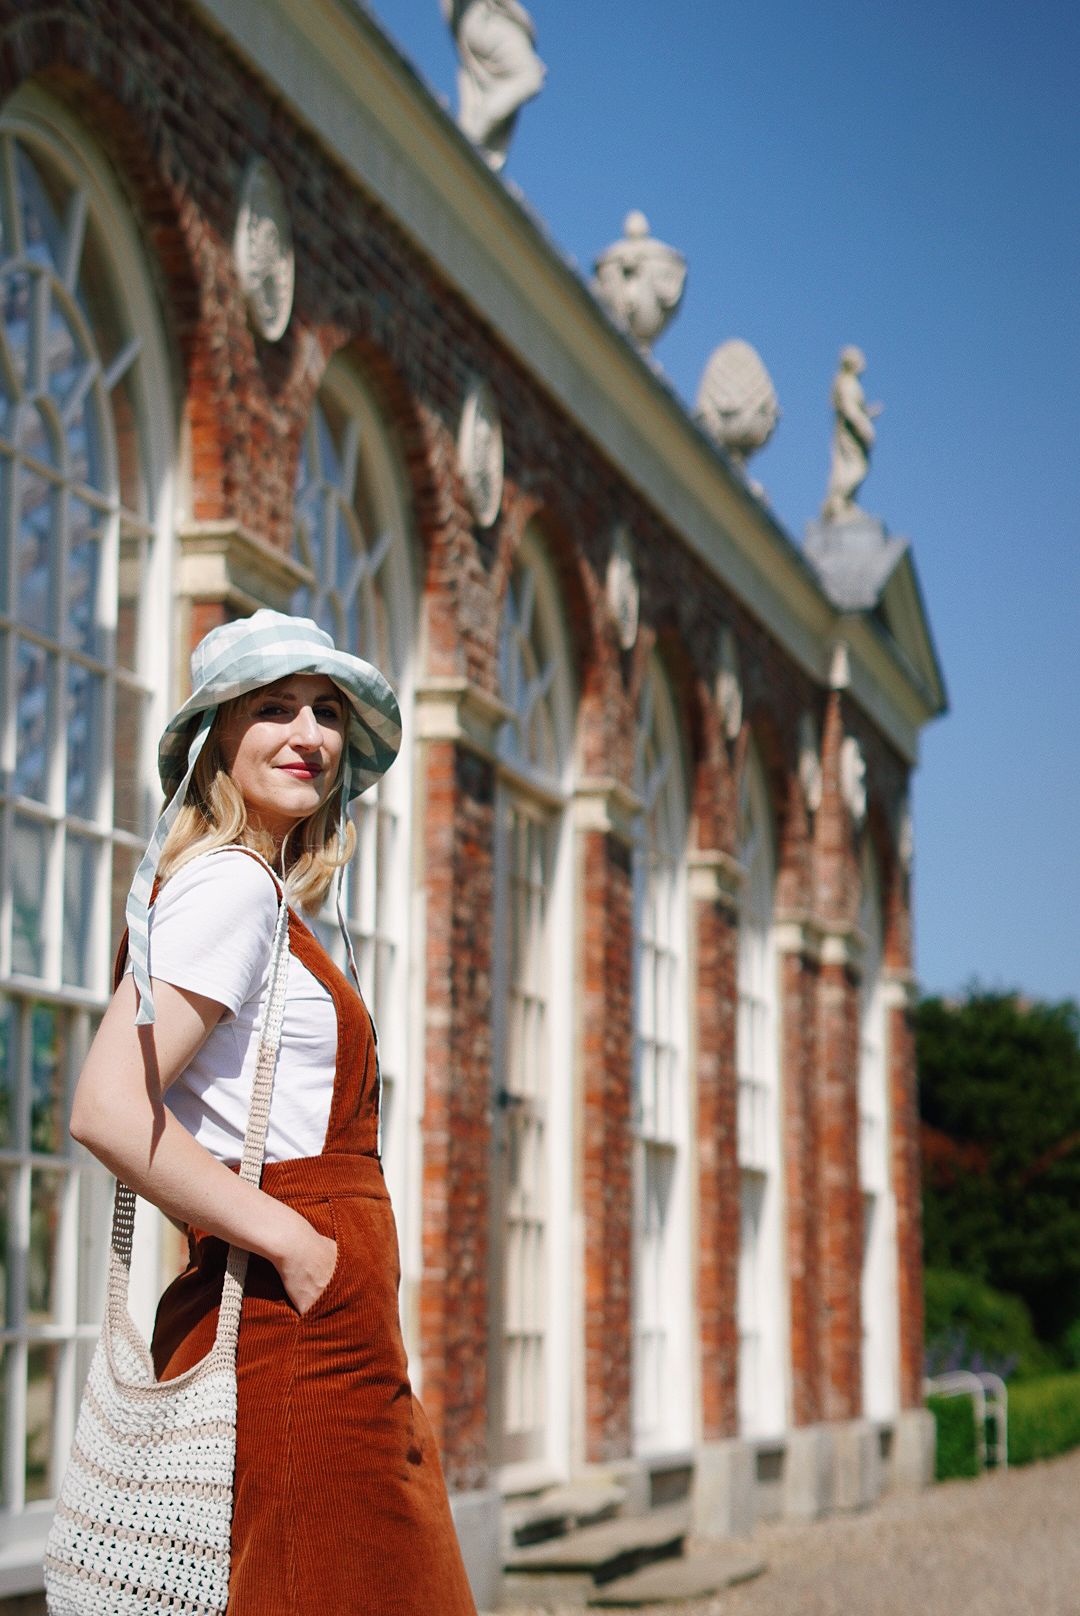 In the foreground, a girl turning to look at the camera, wearing a brown cord pinafore over a white t-shirt and a blue gingham bucket hat. In the background, a big brick greenhouse building with huge windows, filled with plants.